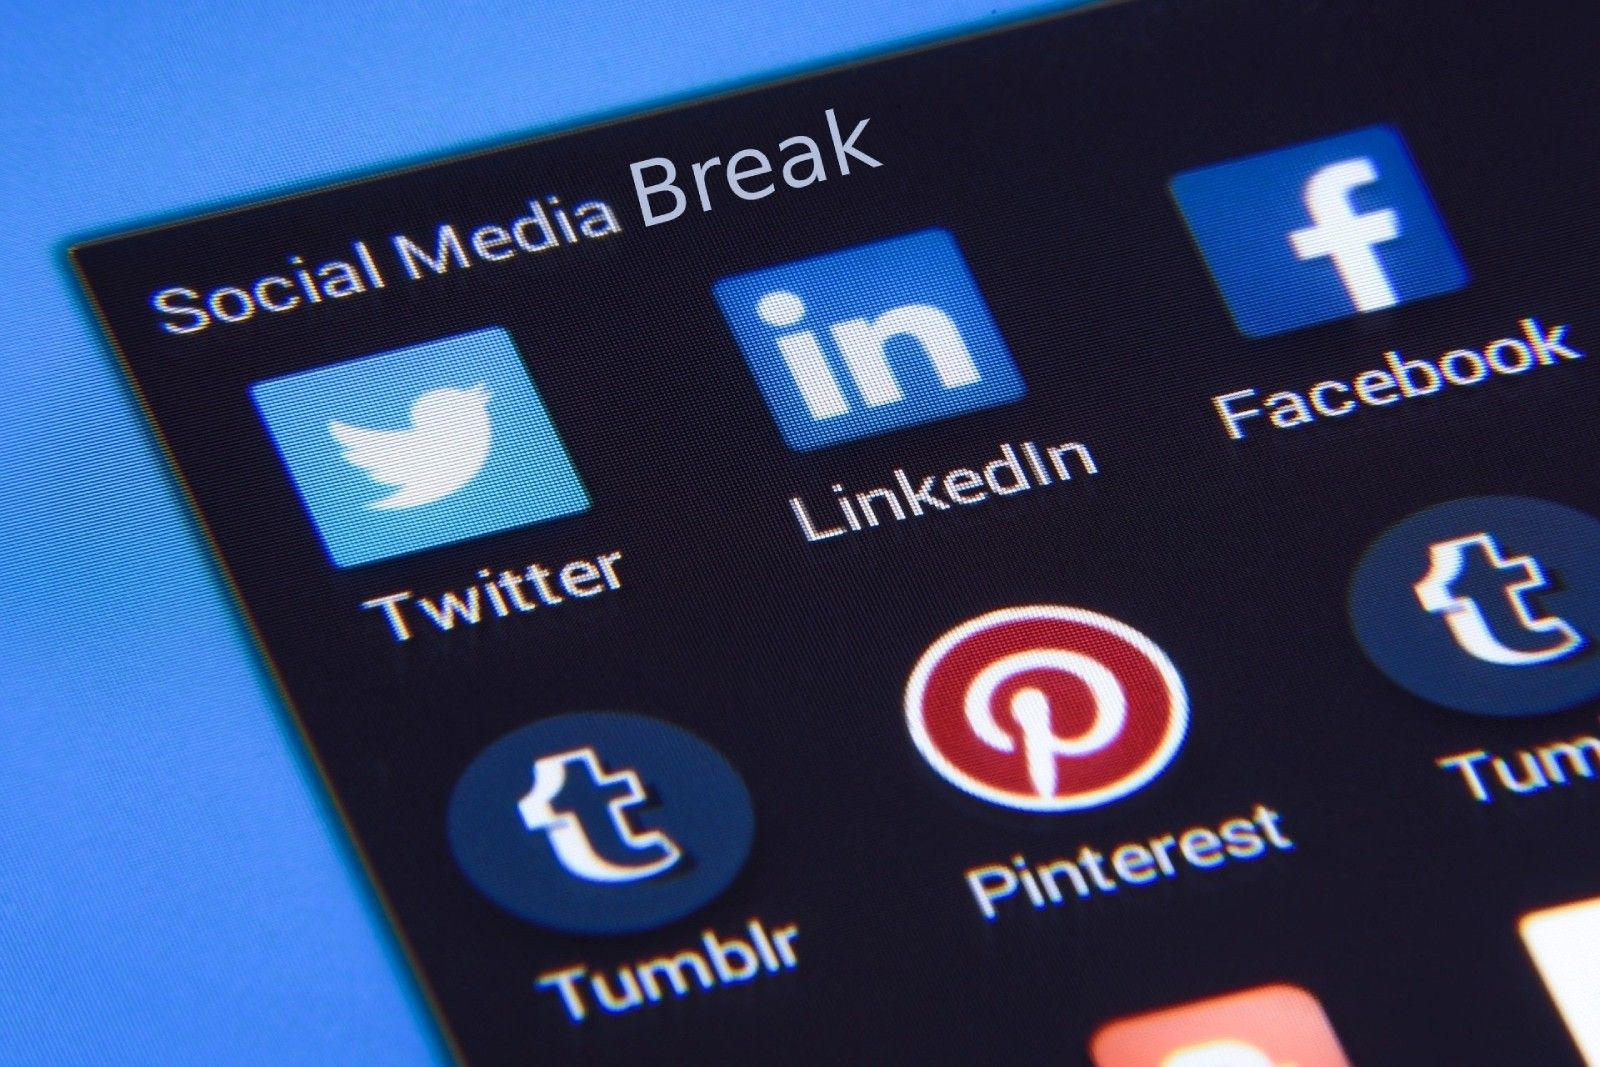 /how-to-take-a-social-media-break-4-essential-tips-and-tricks-c5483zxi feature image